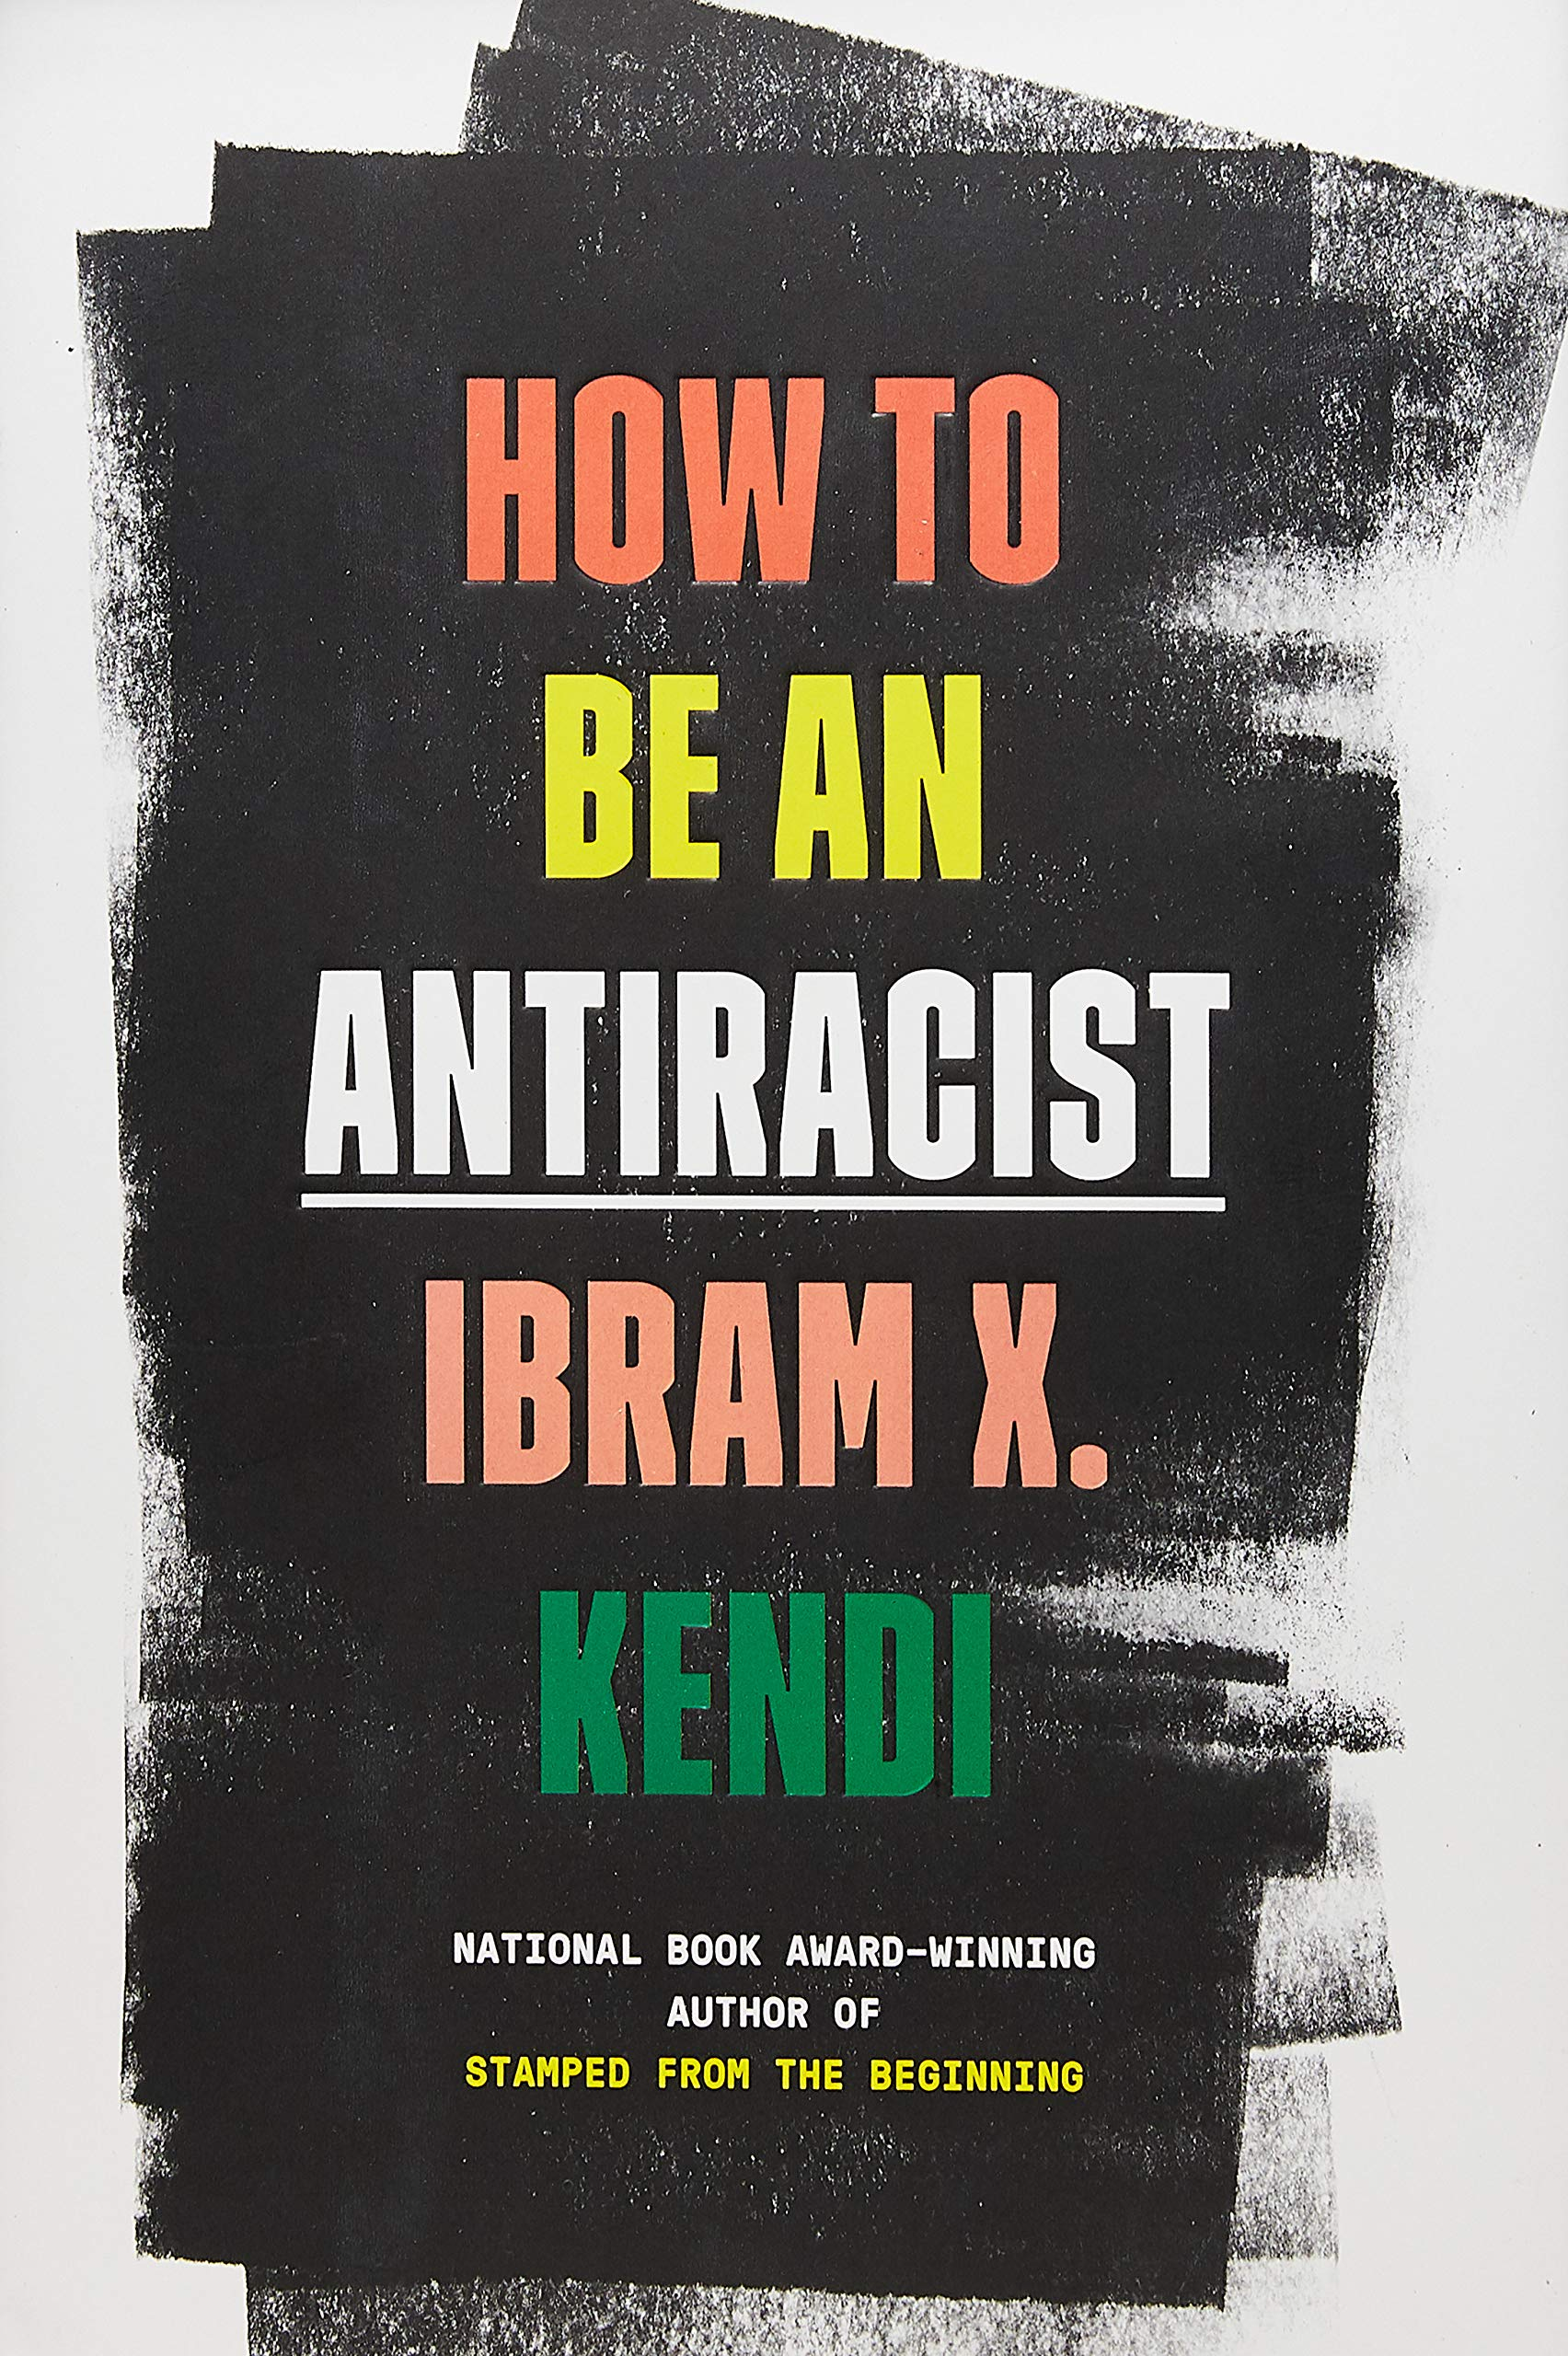 Book cover for How to Be an Antiracist